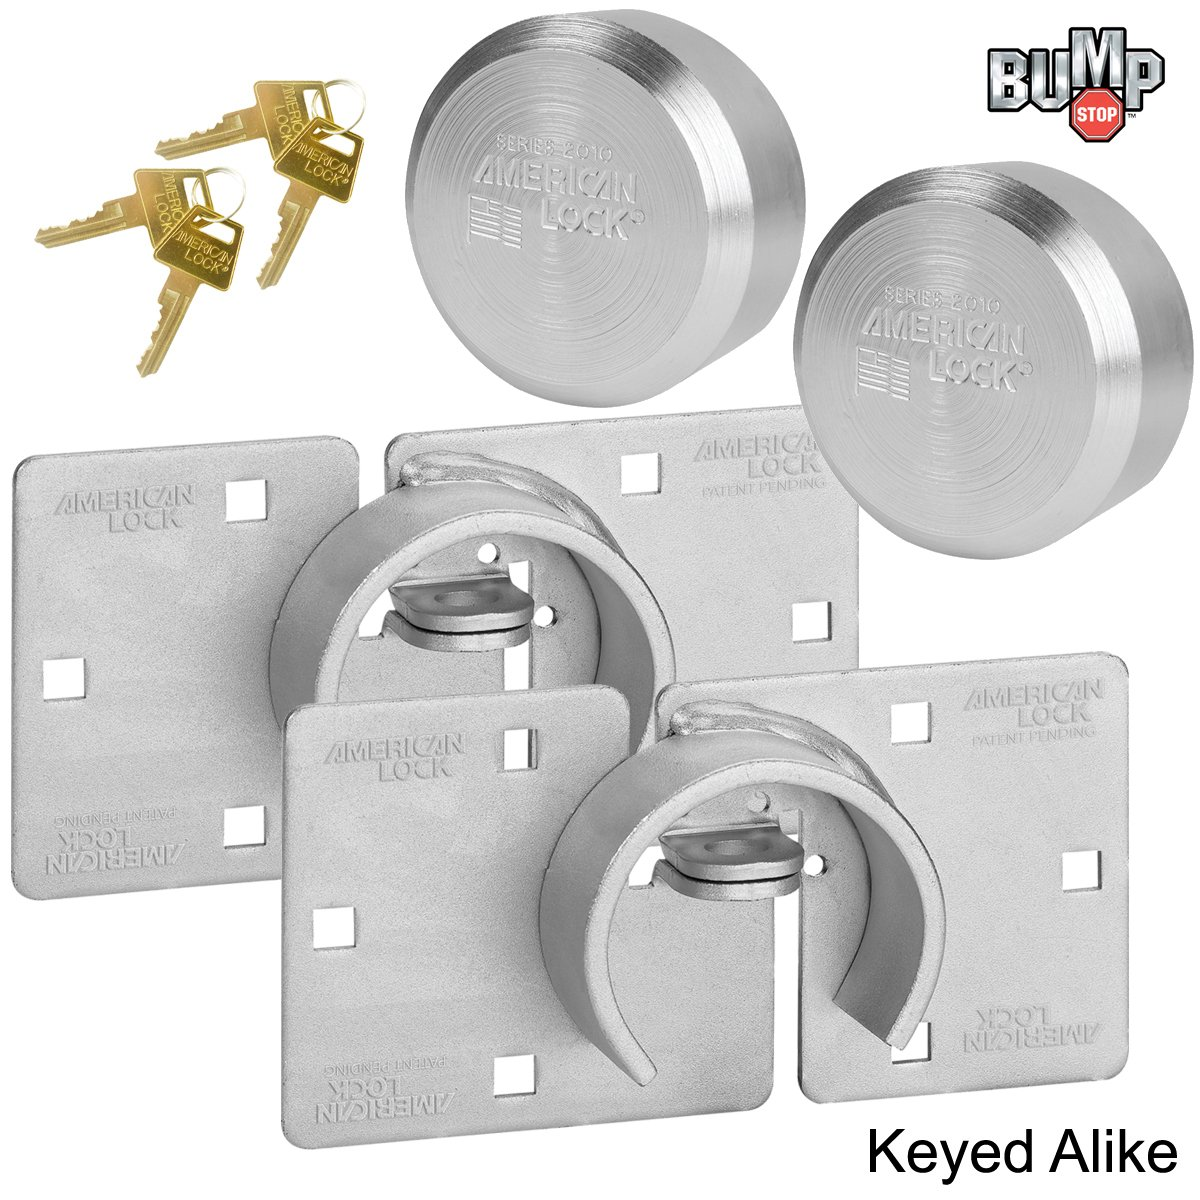 American / Master Lock (2) Hidden Shackle and Hasp Combo A801 - A2010NKA-2 w/ Bumpstop Technology